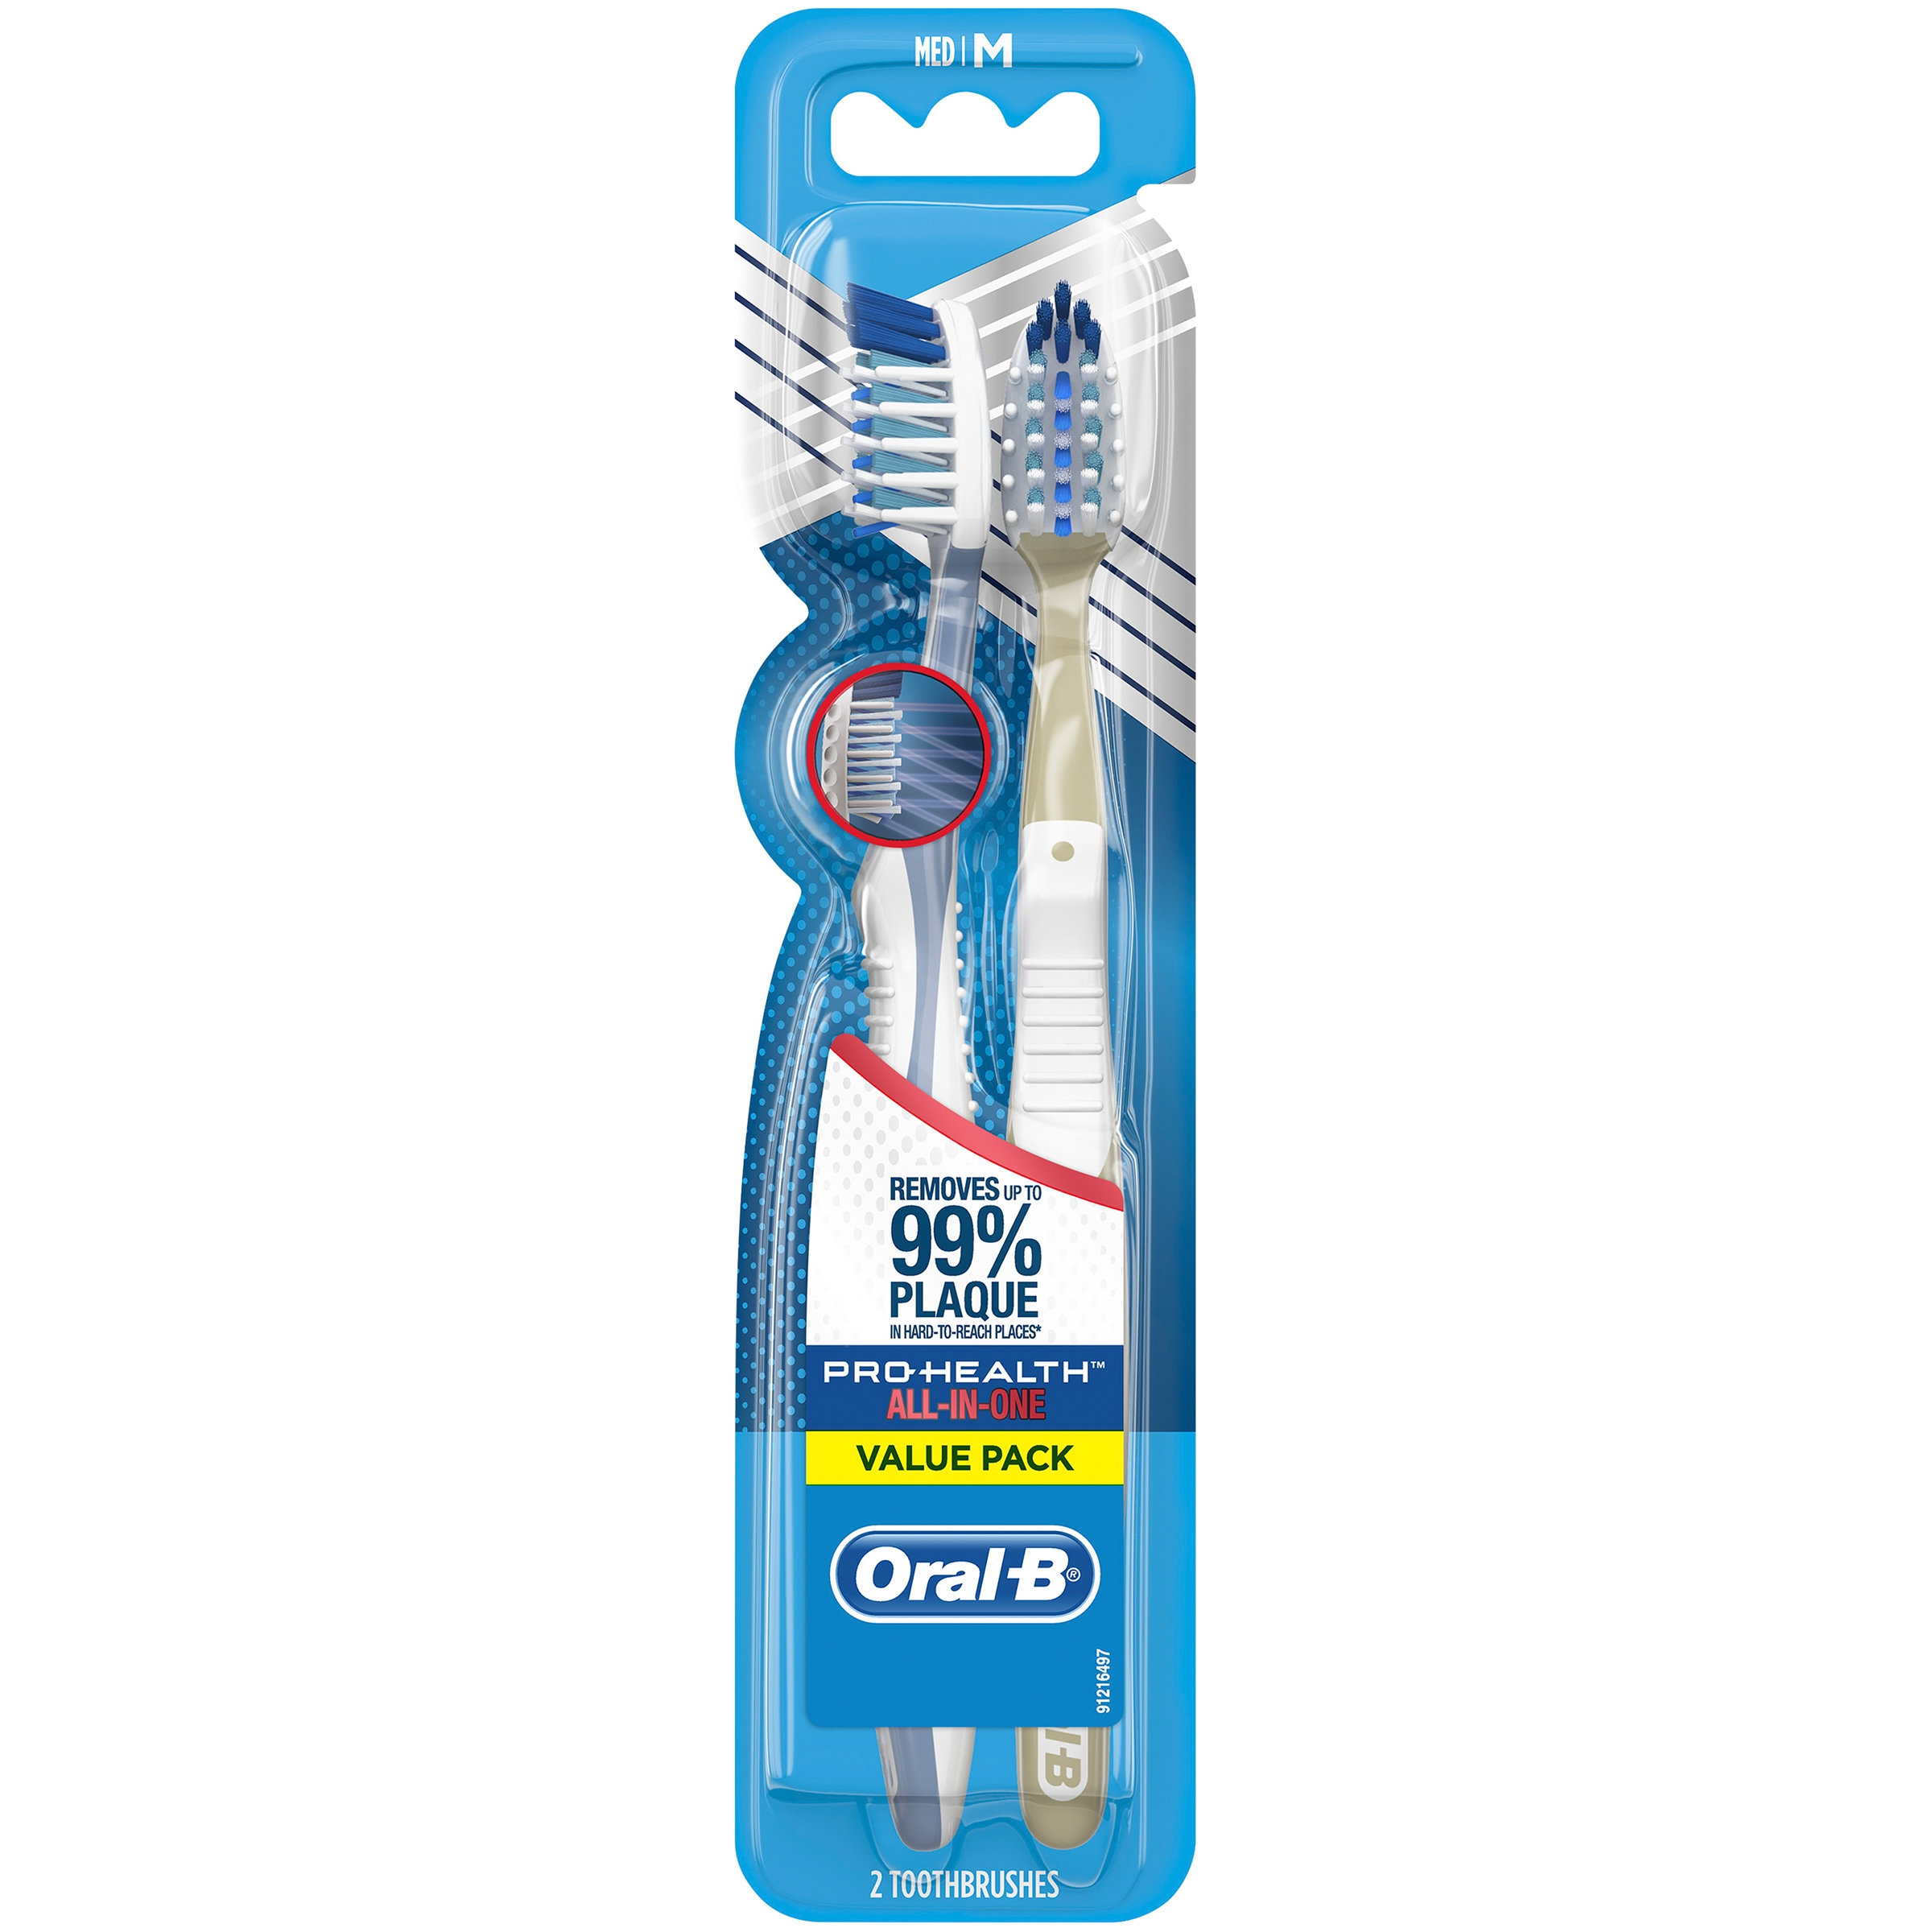 Oral-B Pro-Health All-in-One Manual Toothbrush, Medium, 2 ct., Value Pack